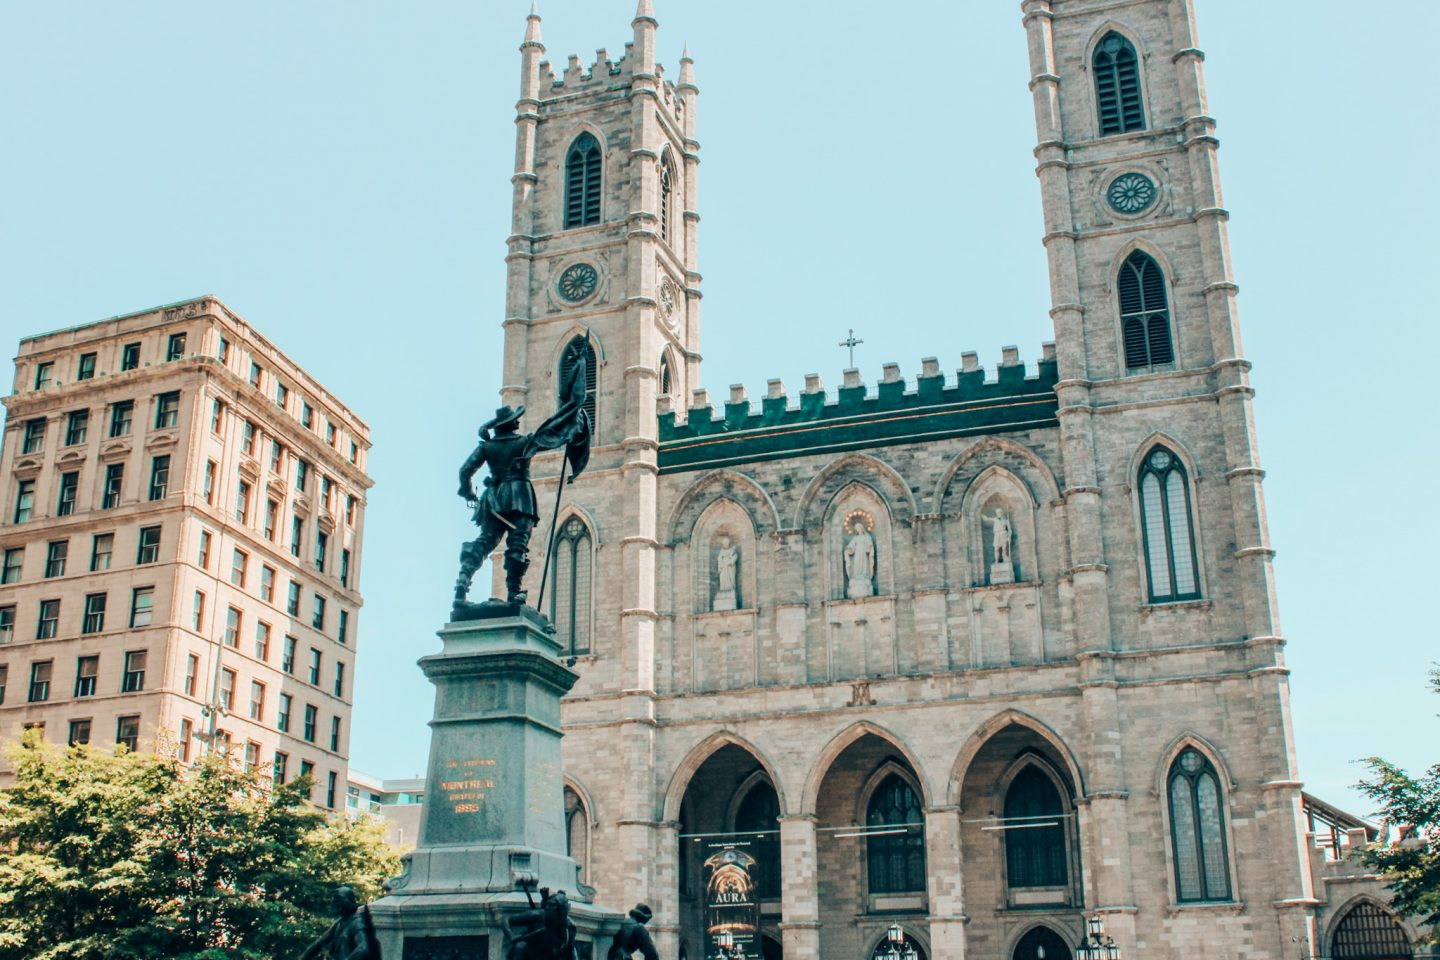 Notre Dame Basilica located in the heart of Old Montreal.